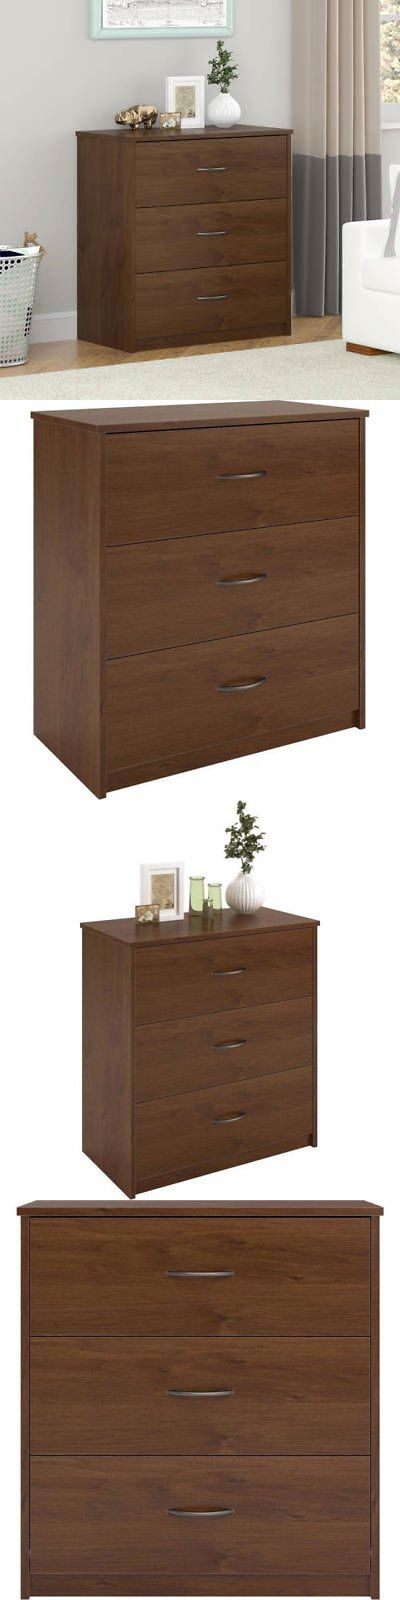 Dressers and Chests of Drawers 114397: Dresser 3 Chest Of ...